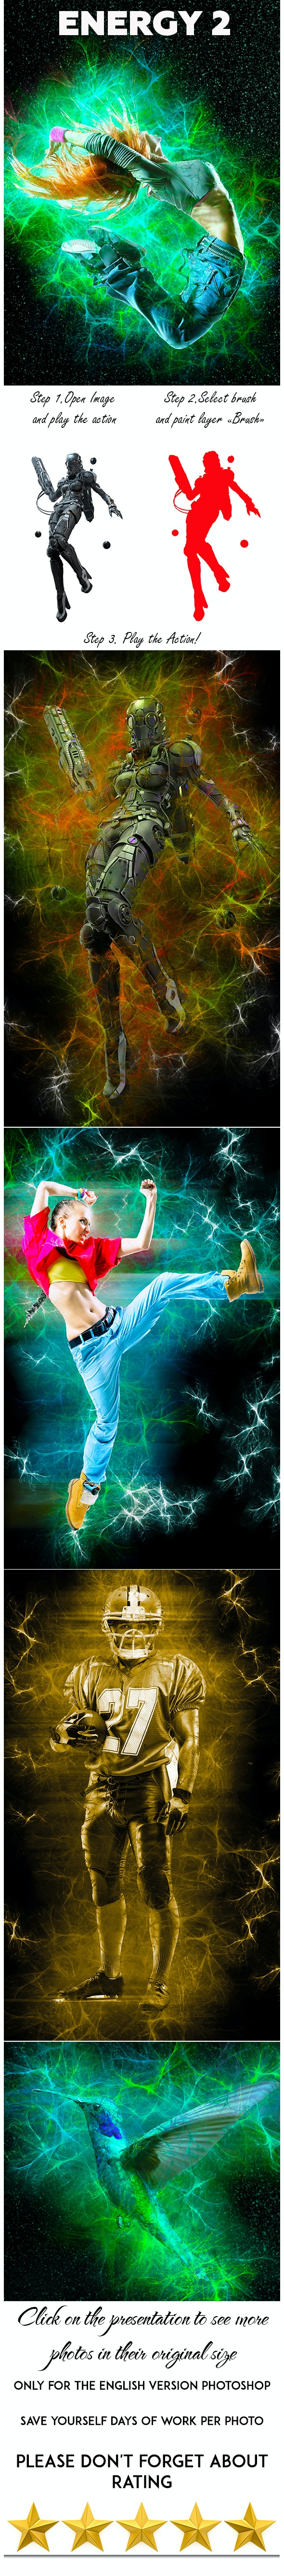 Energy 2 Photoshop Action - Photo Effects Actions